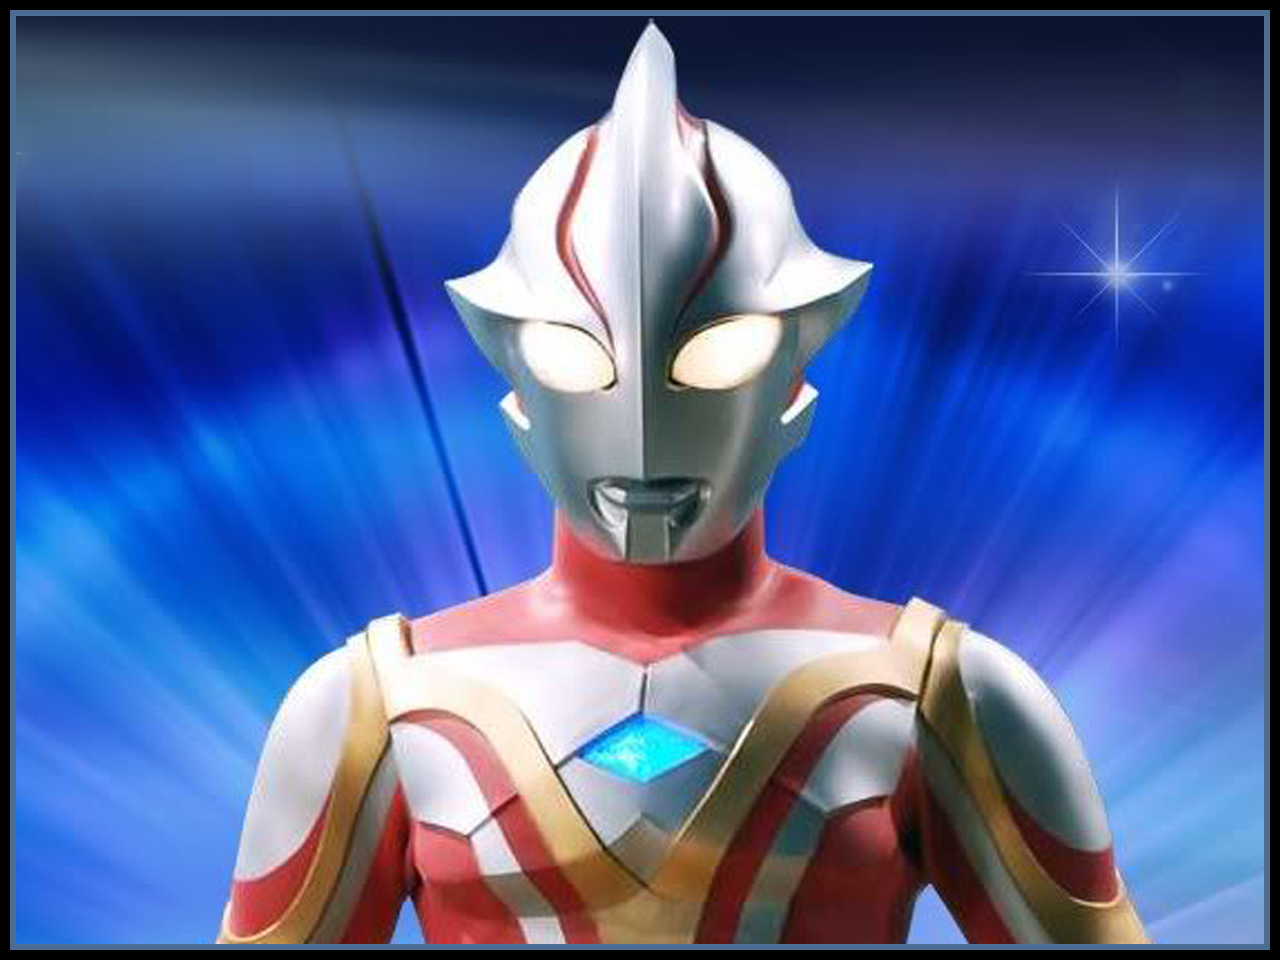 Draw Your Home Ultraman Wallpaper 33652 Hd Wallpapers Background